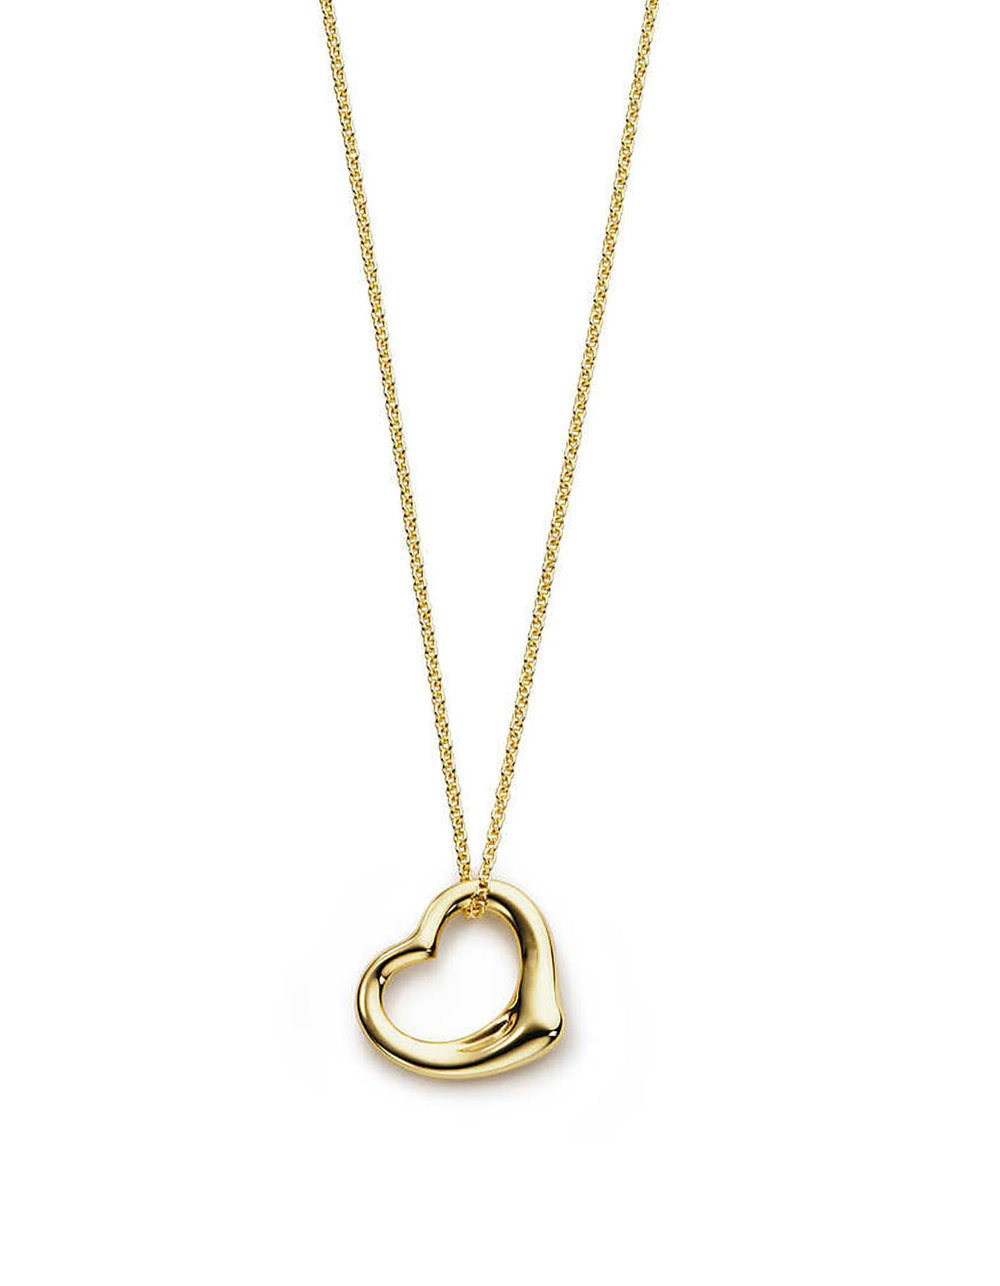 T and CO 18k gold open heart necklace 118732-5.jpg